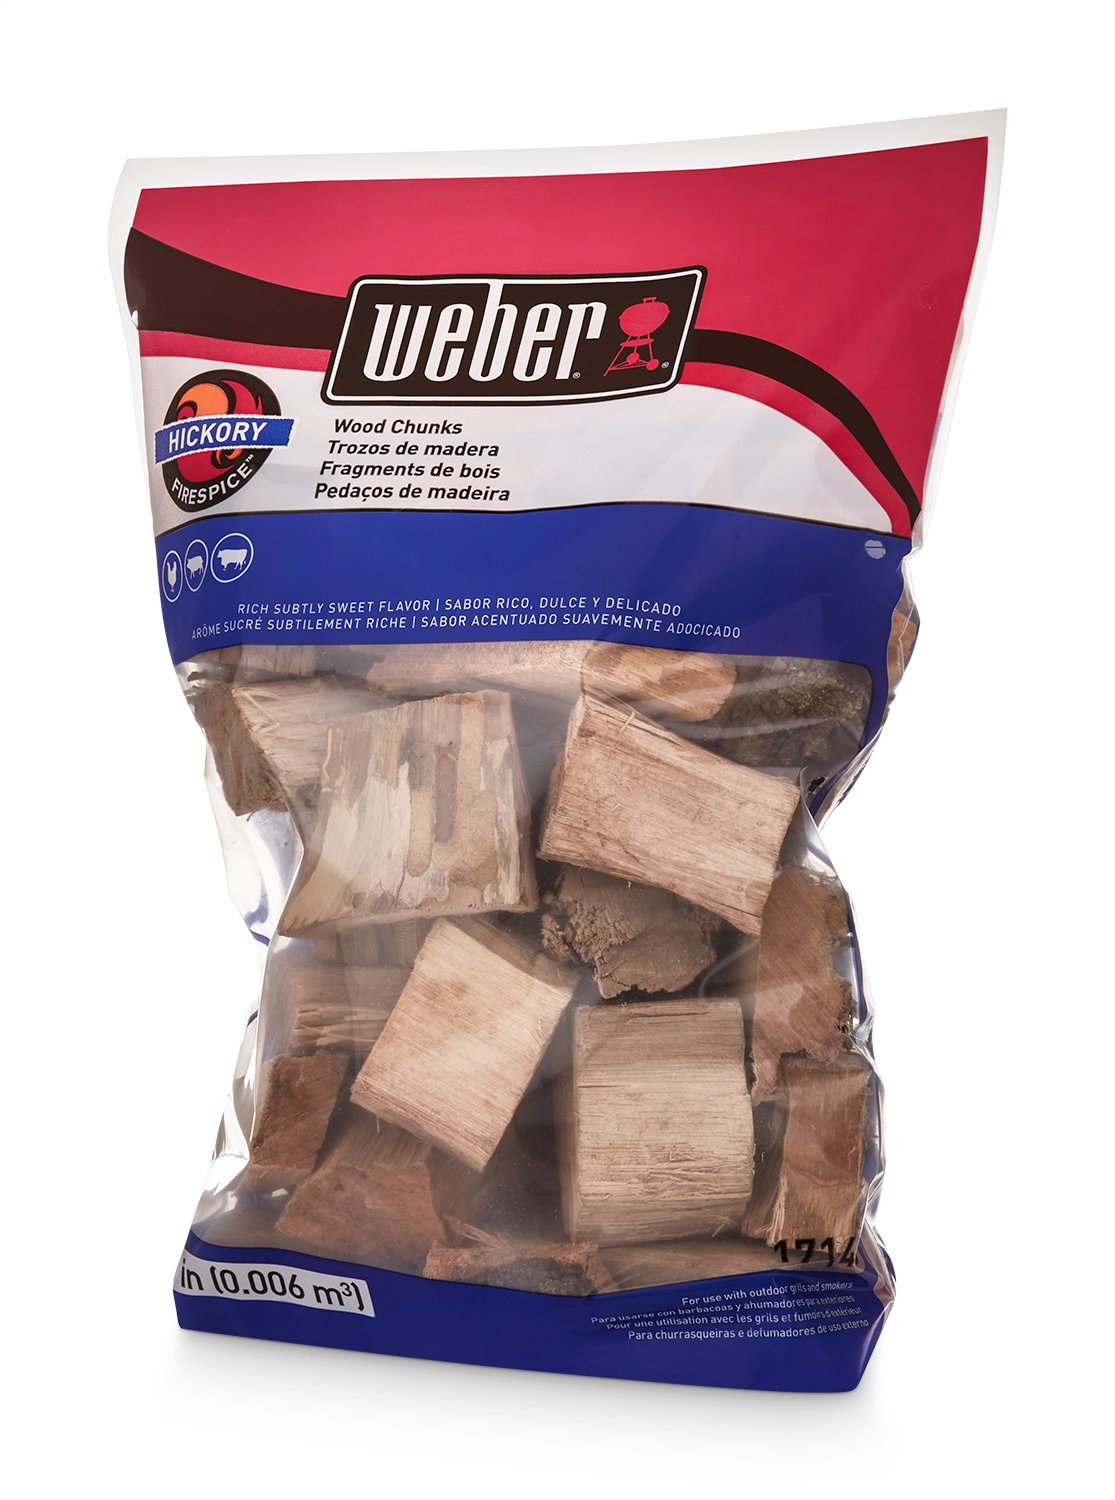 Weber 17148 Hickory Wood Chunks, 350 cu. in. (0.006 Cubic Meter)